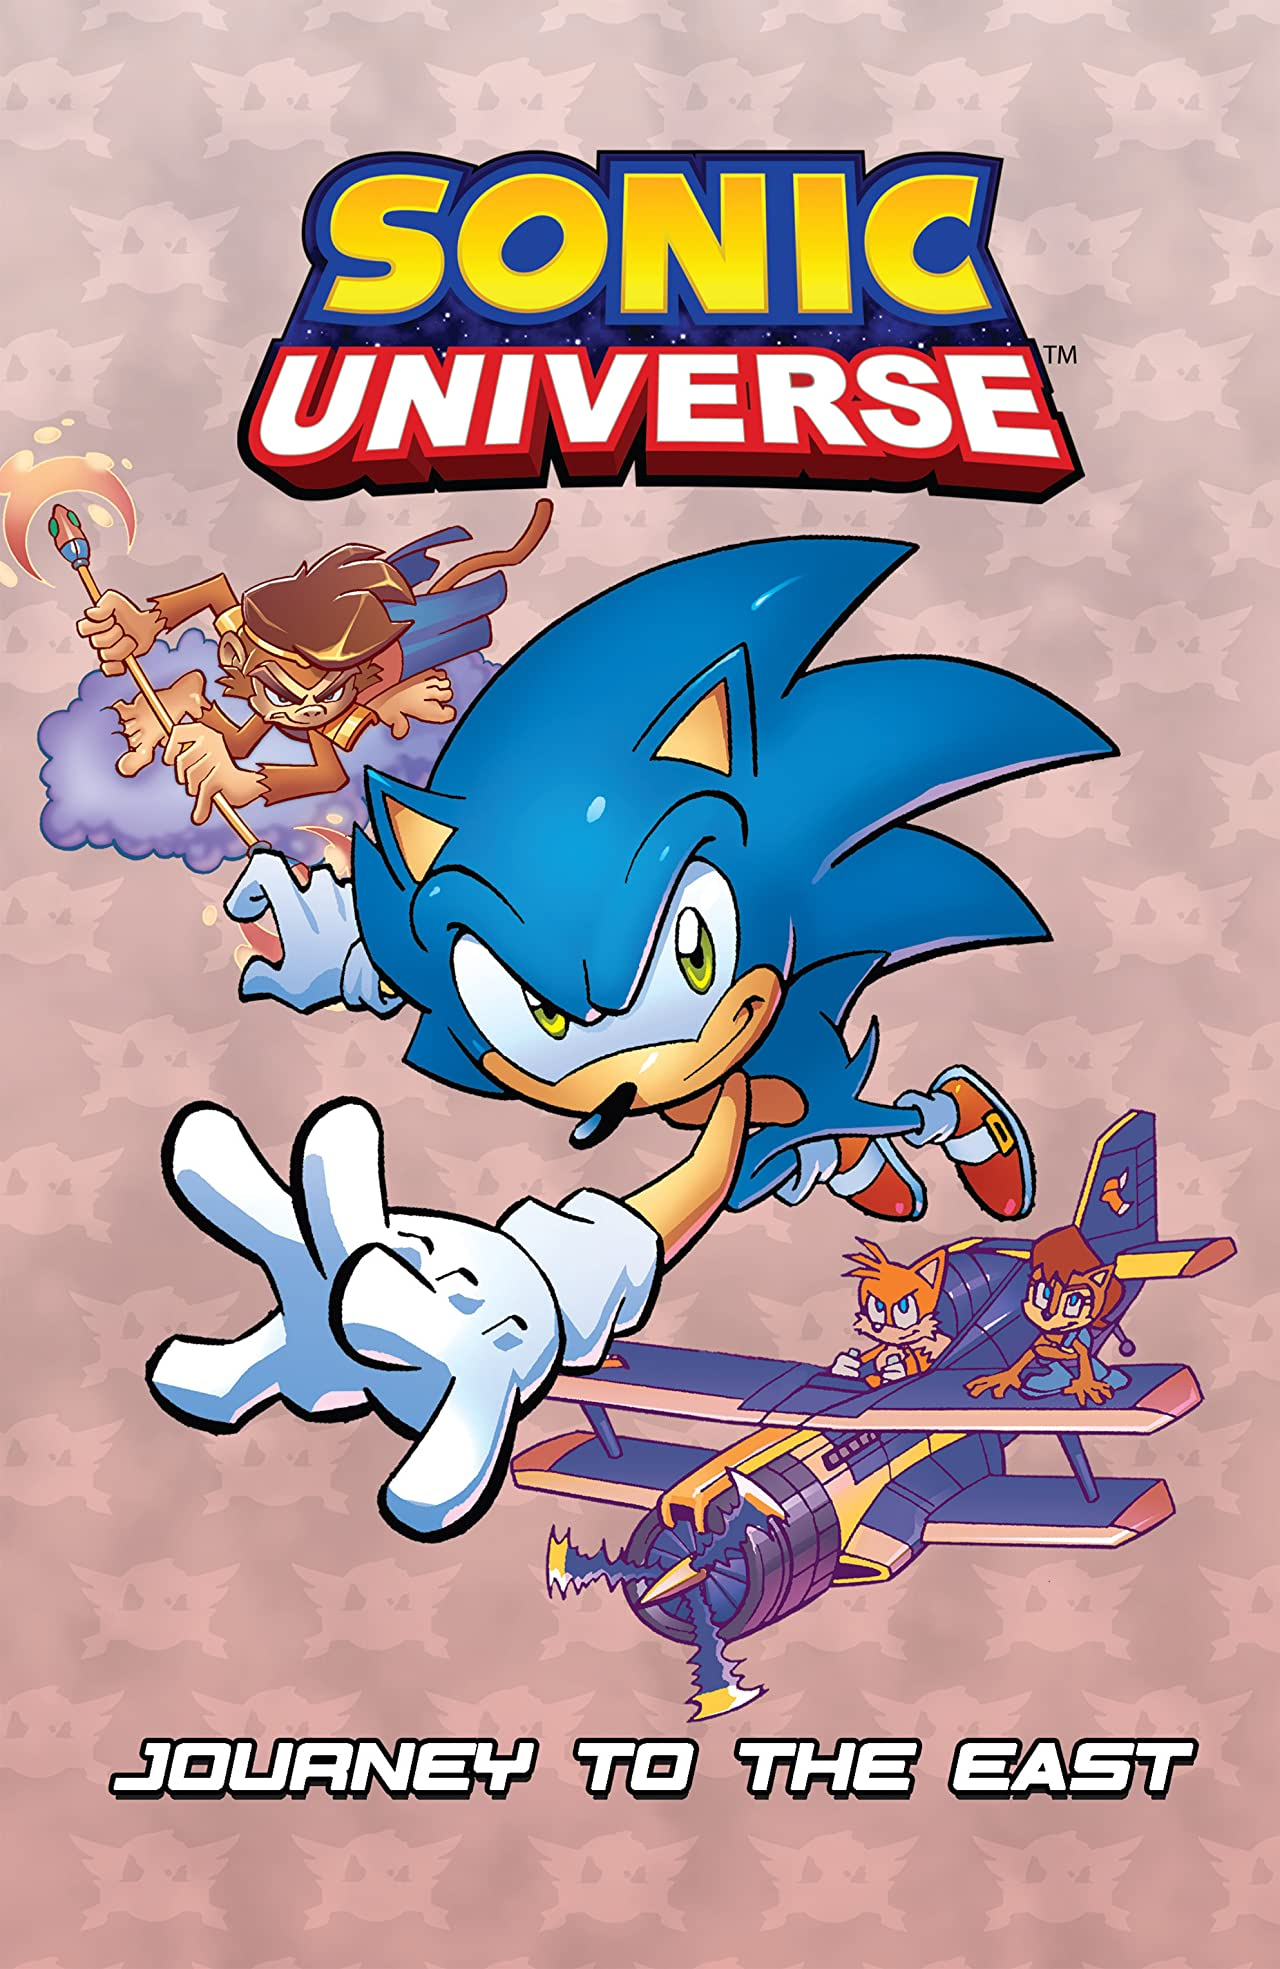 Sonic Universe Vol. 4: Journey To the East